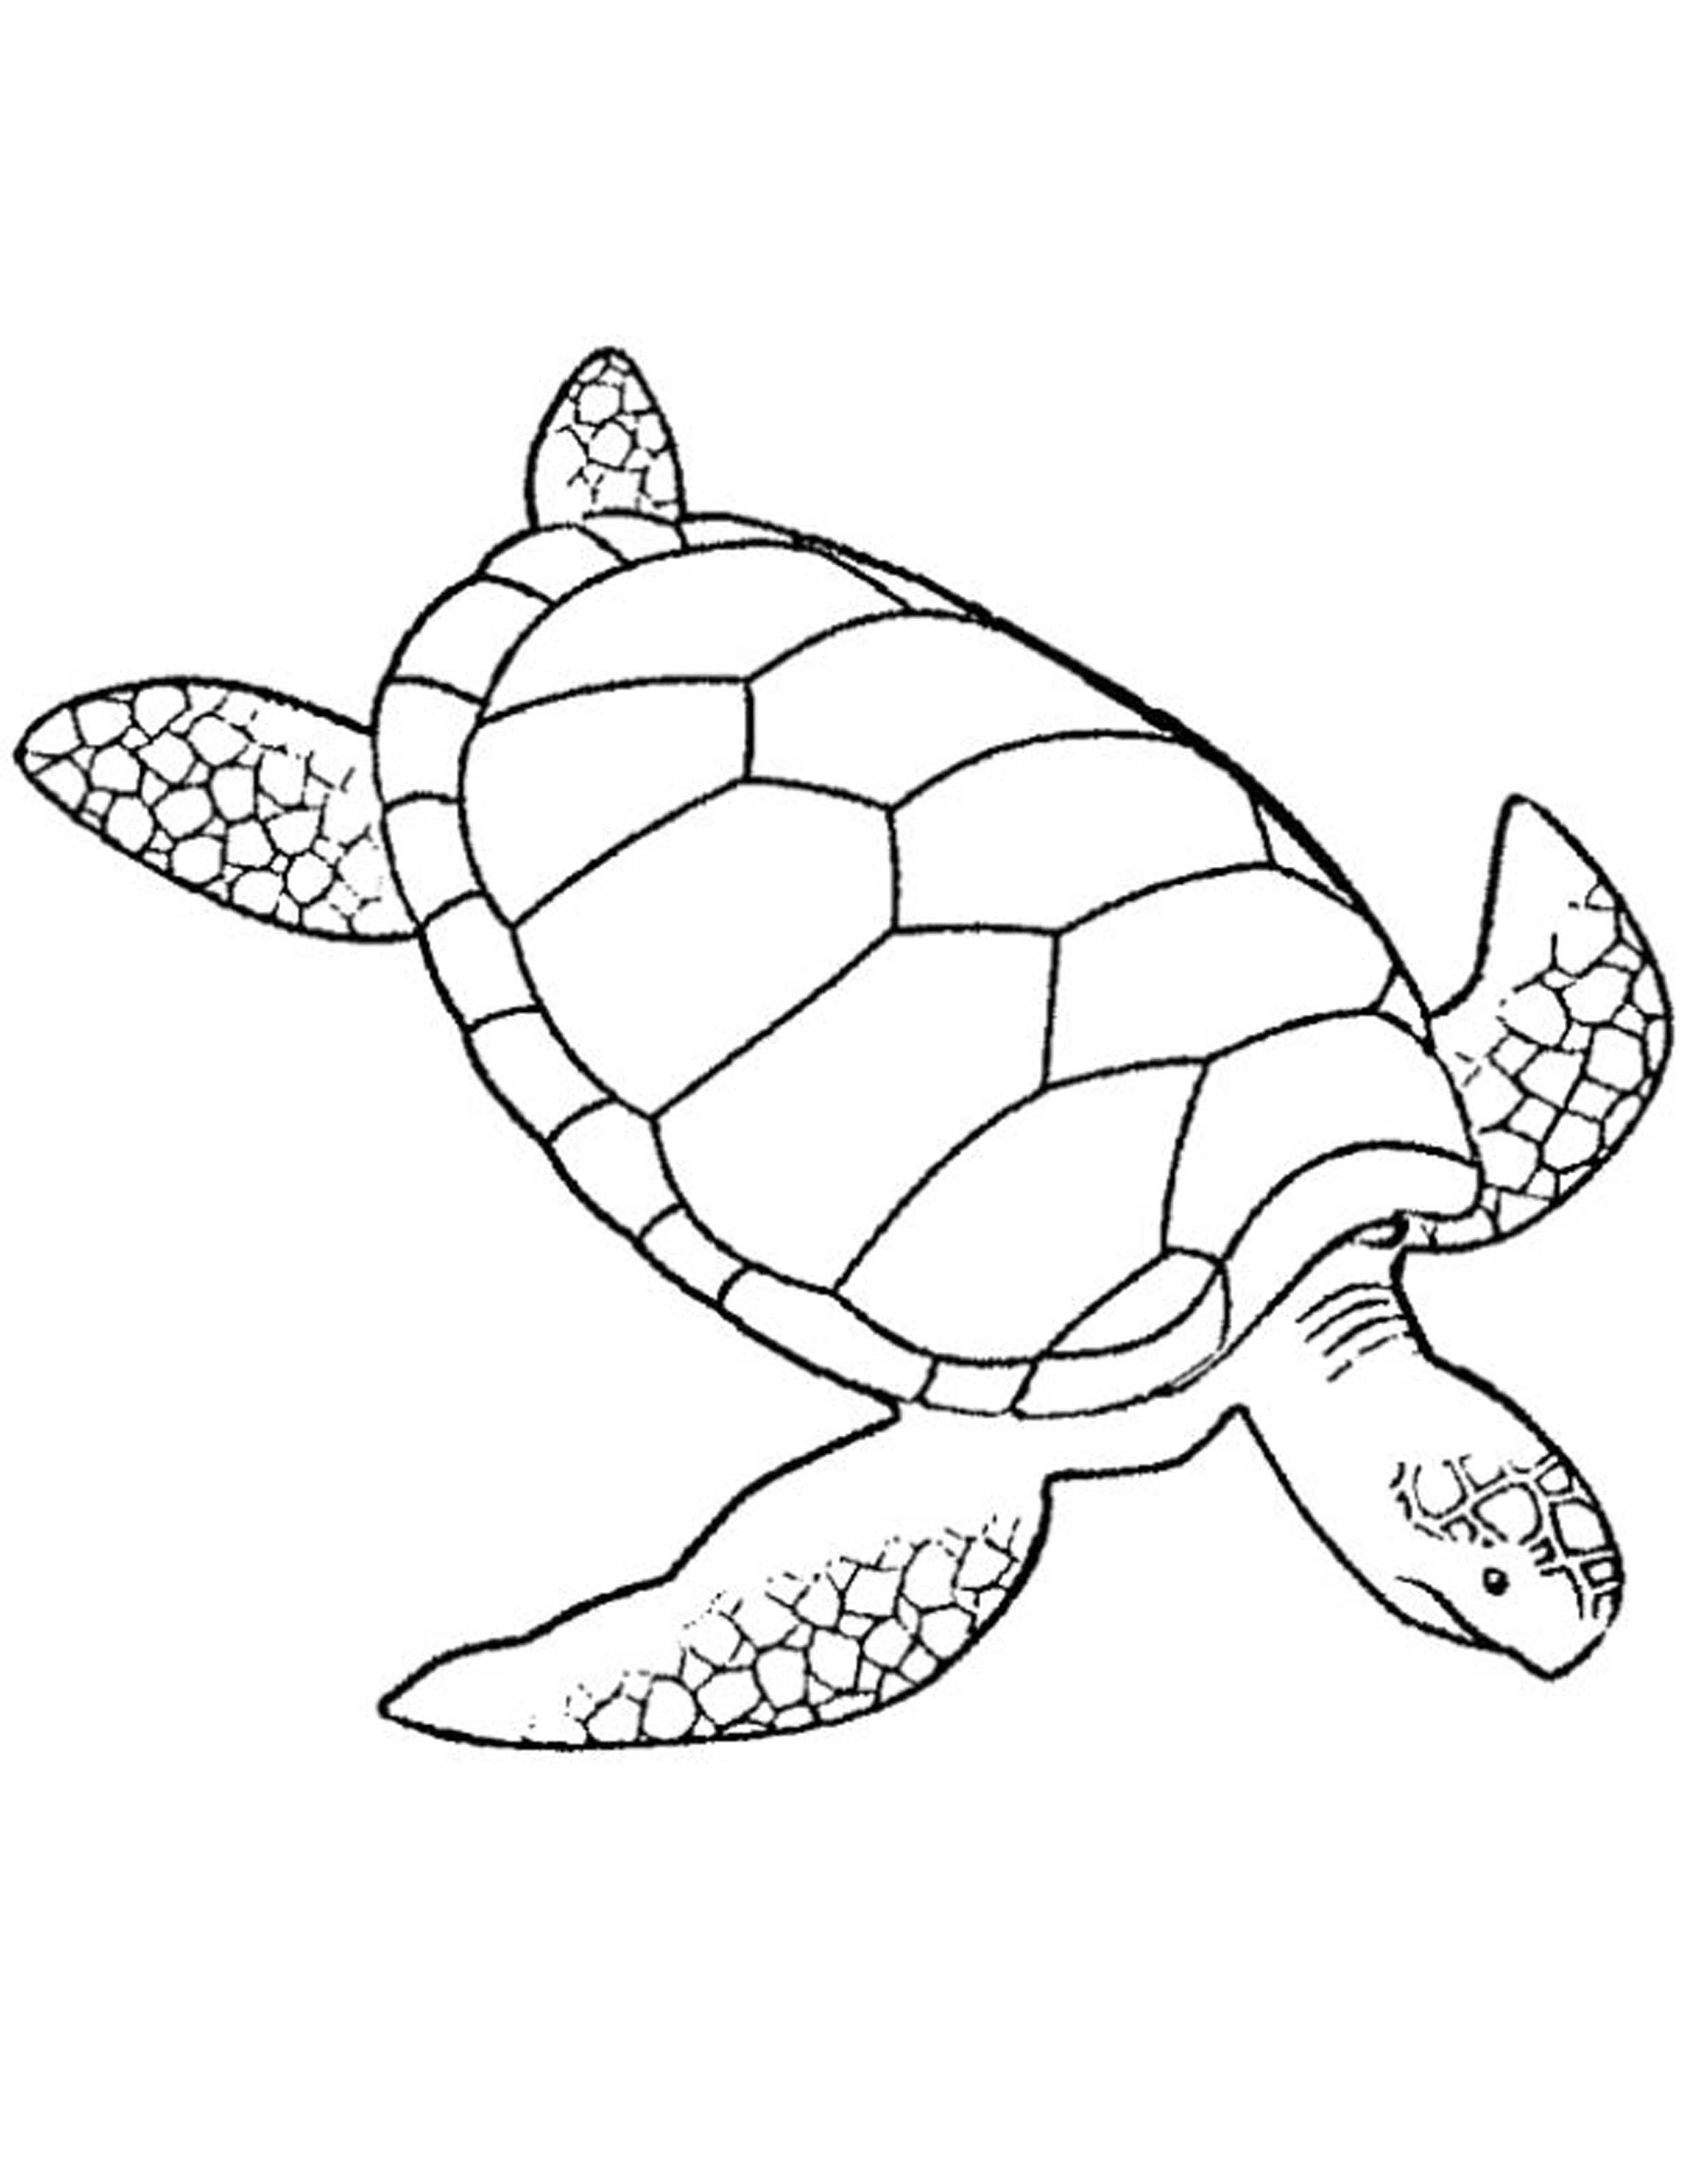 Turtle pictures to color